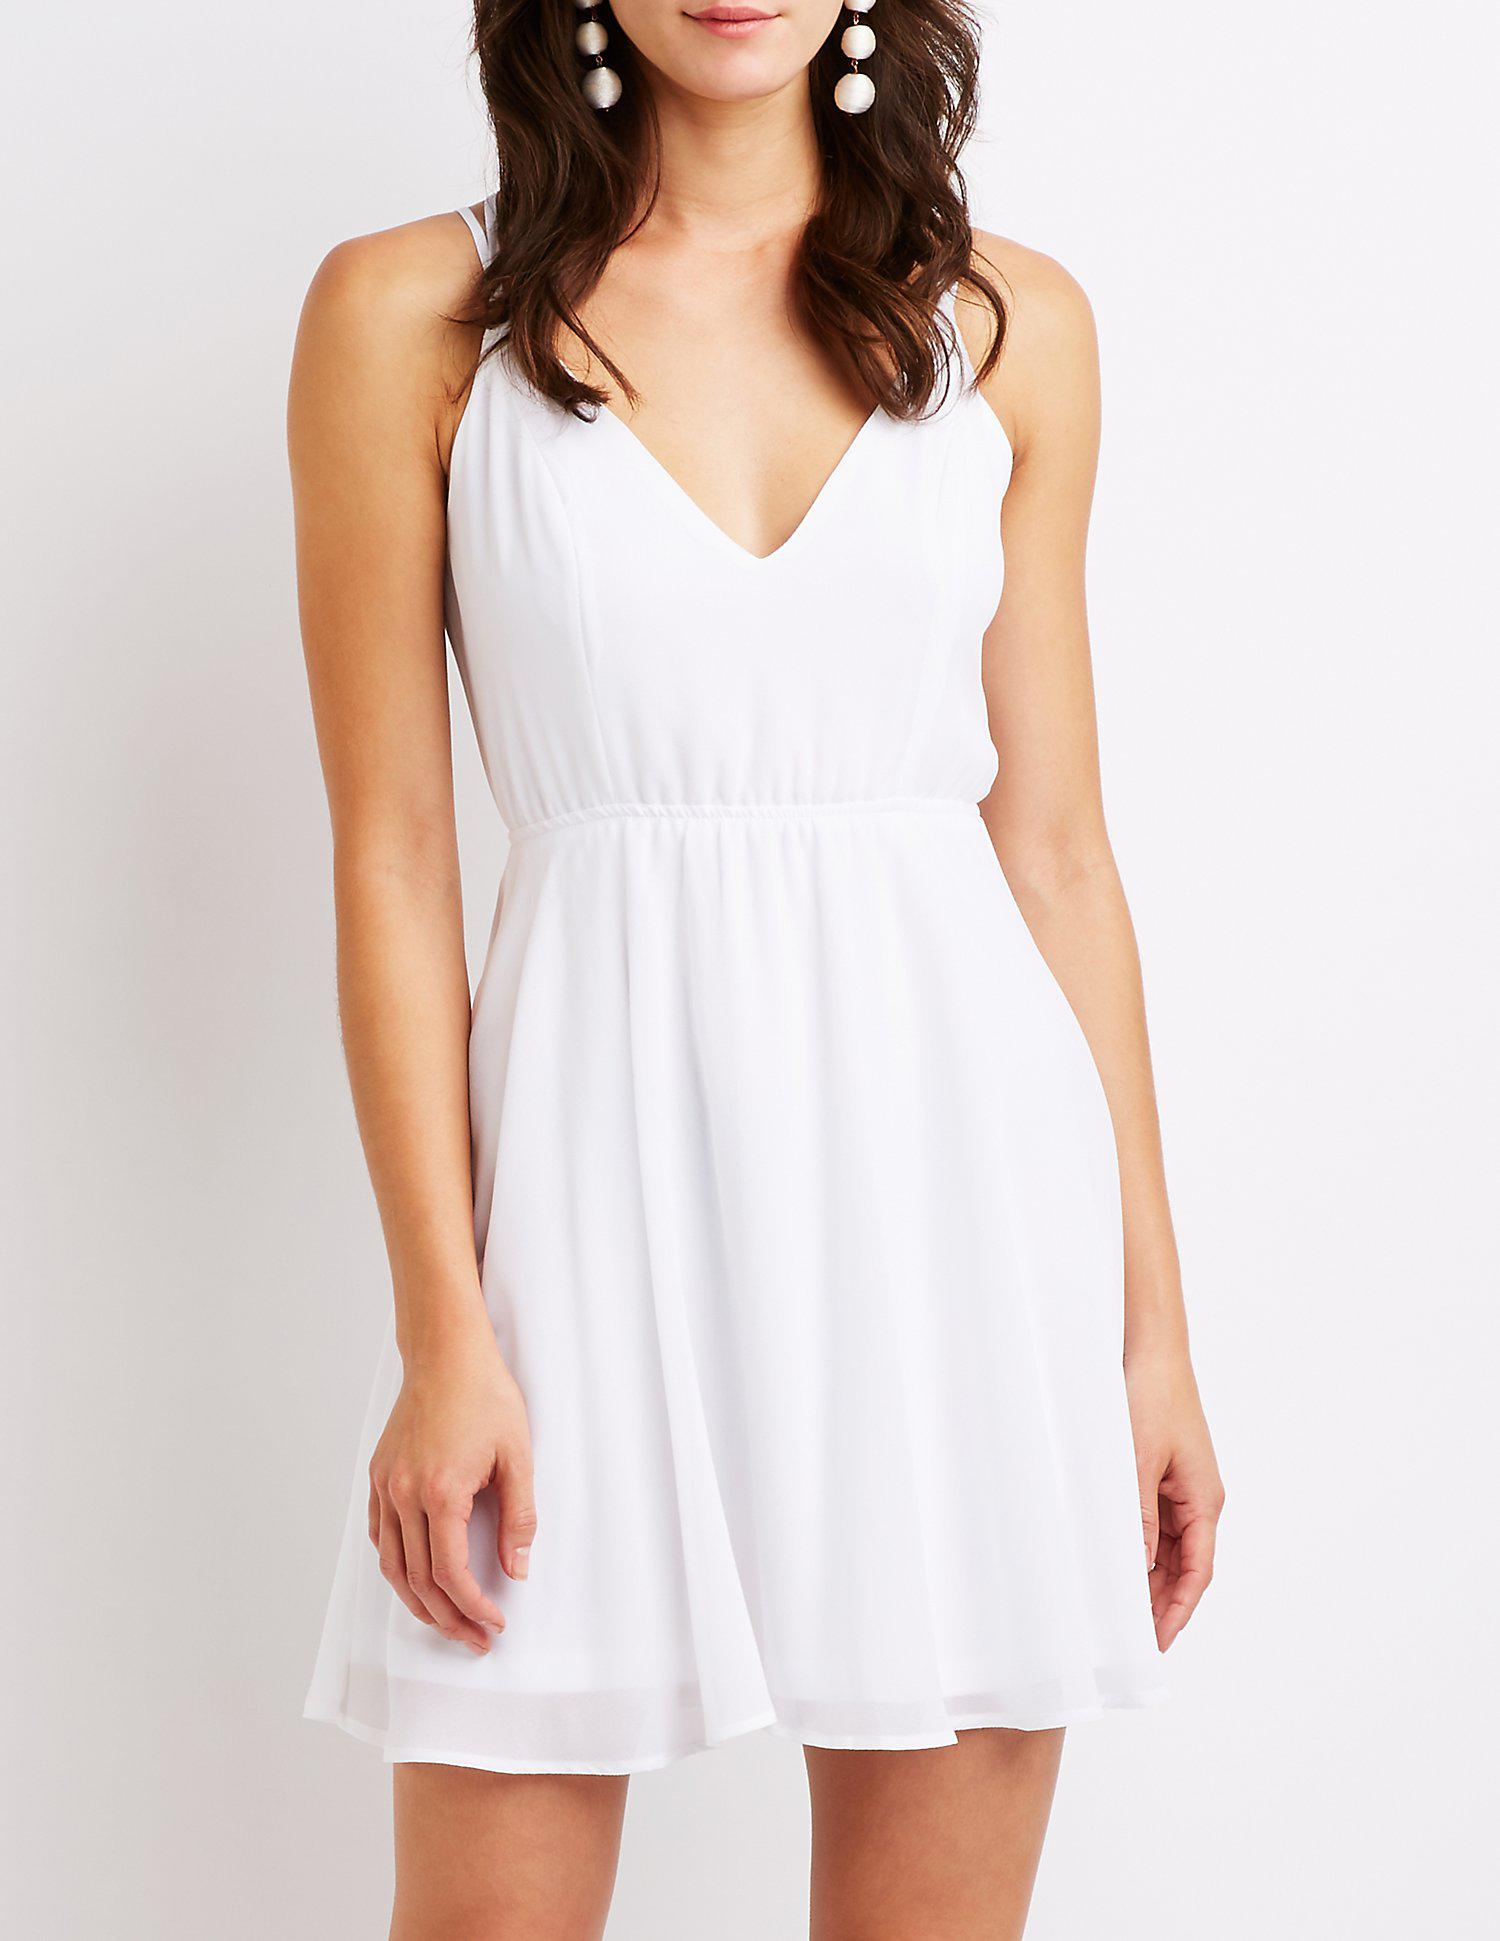 10fad3c09c Lyst - Charlotte Russe Strappy Open Back Skater Dress in White ...